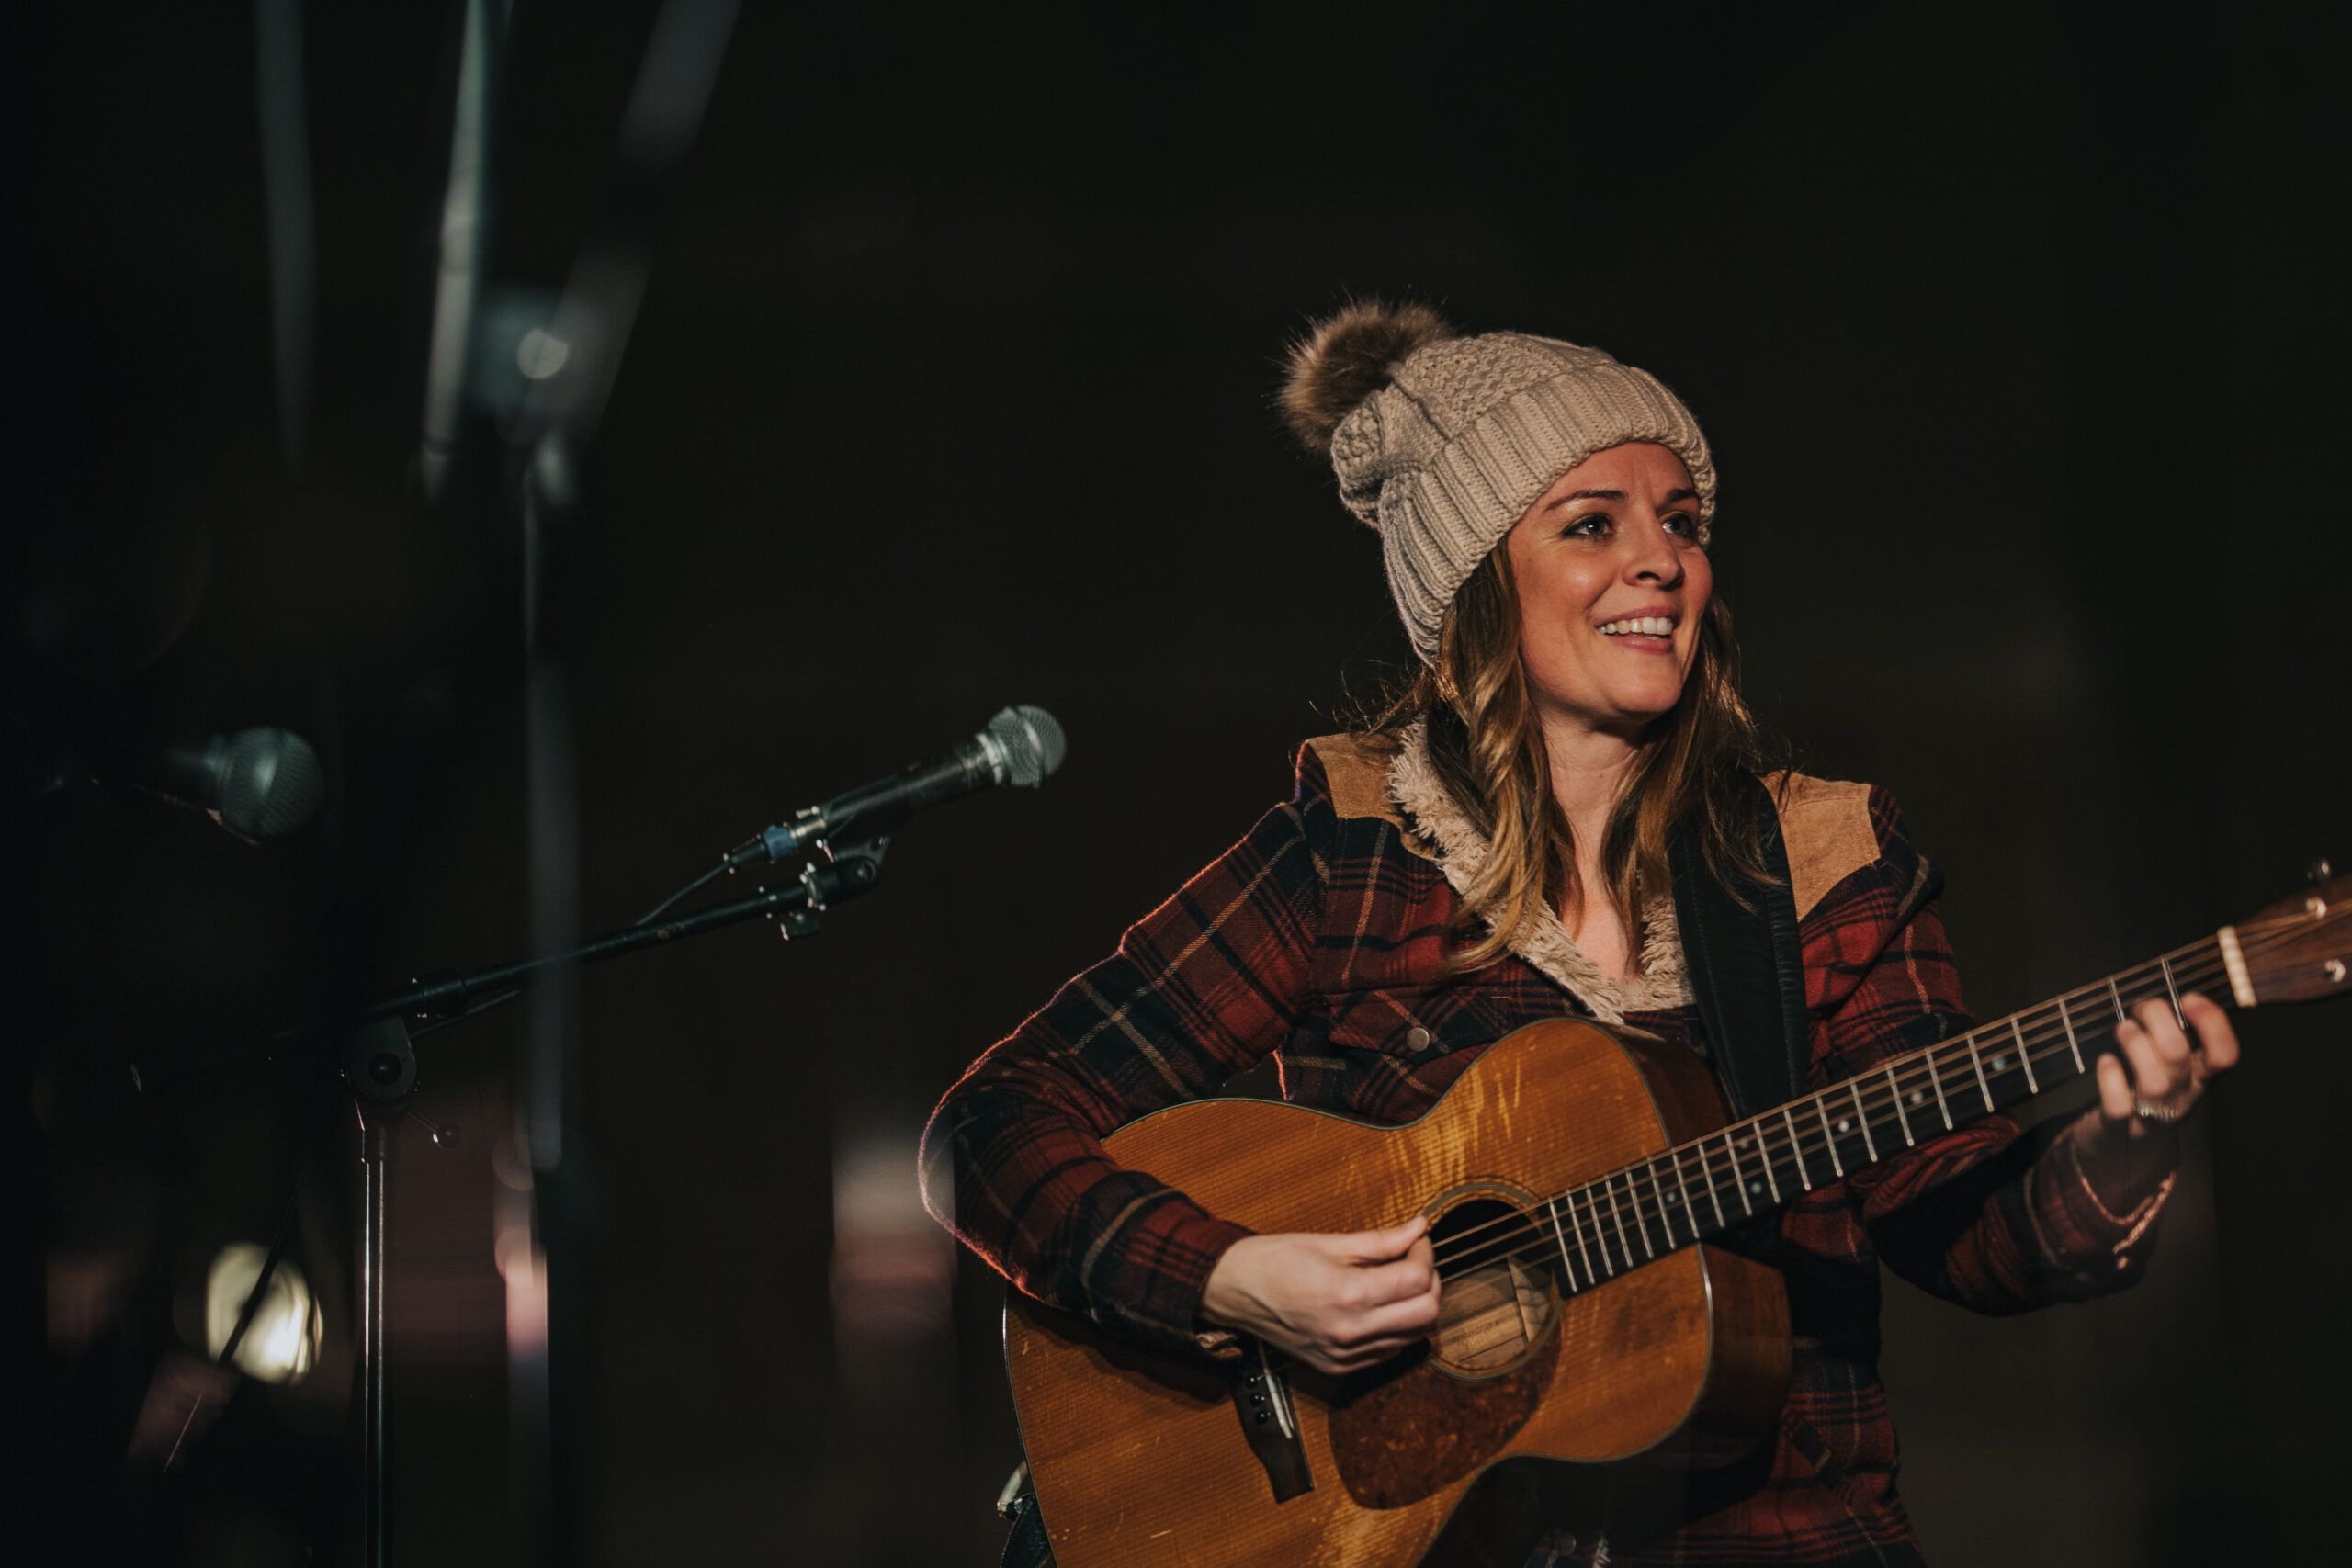 Musician Monica Rizzio performing at the 2018 Cape Cod Christmas Cavalcade